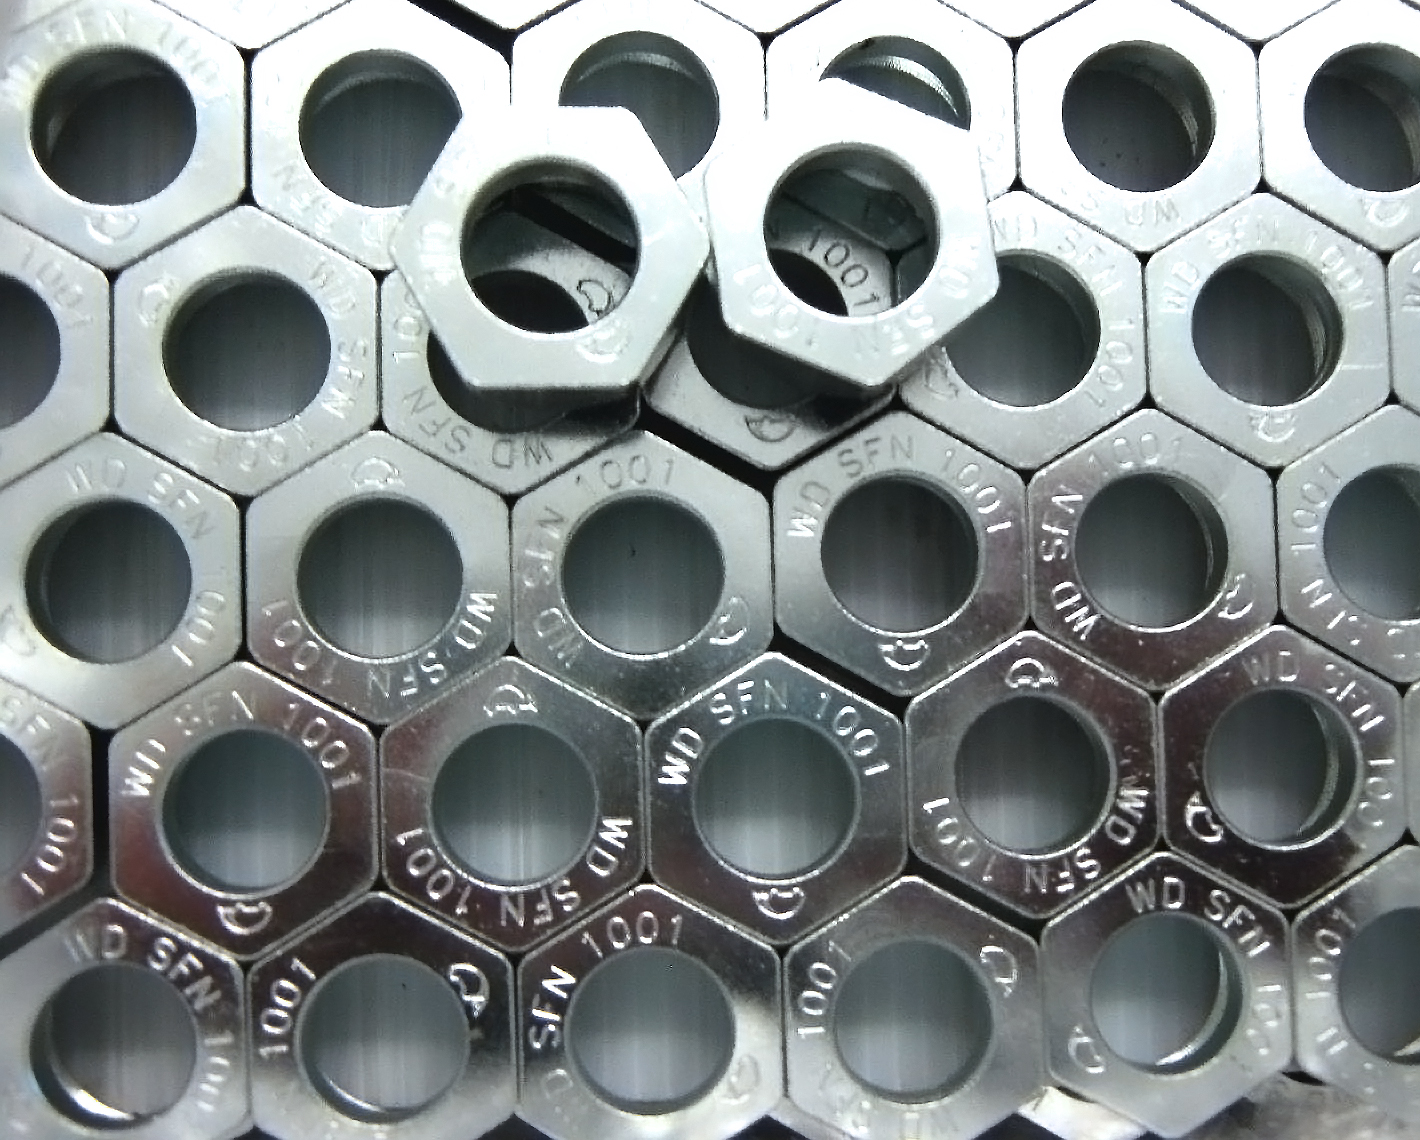 Engraved parts